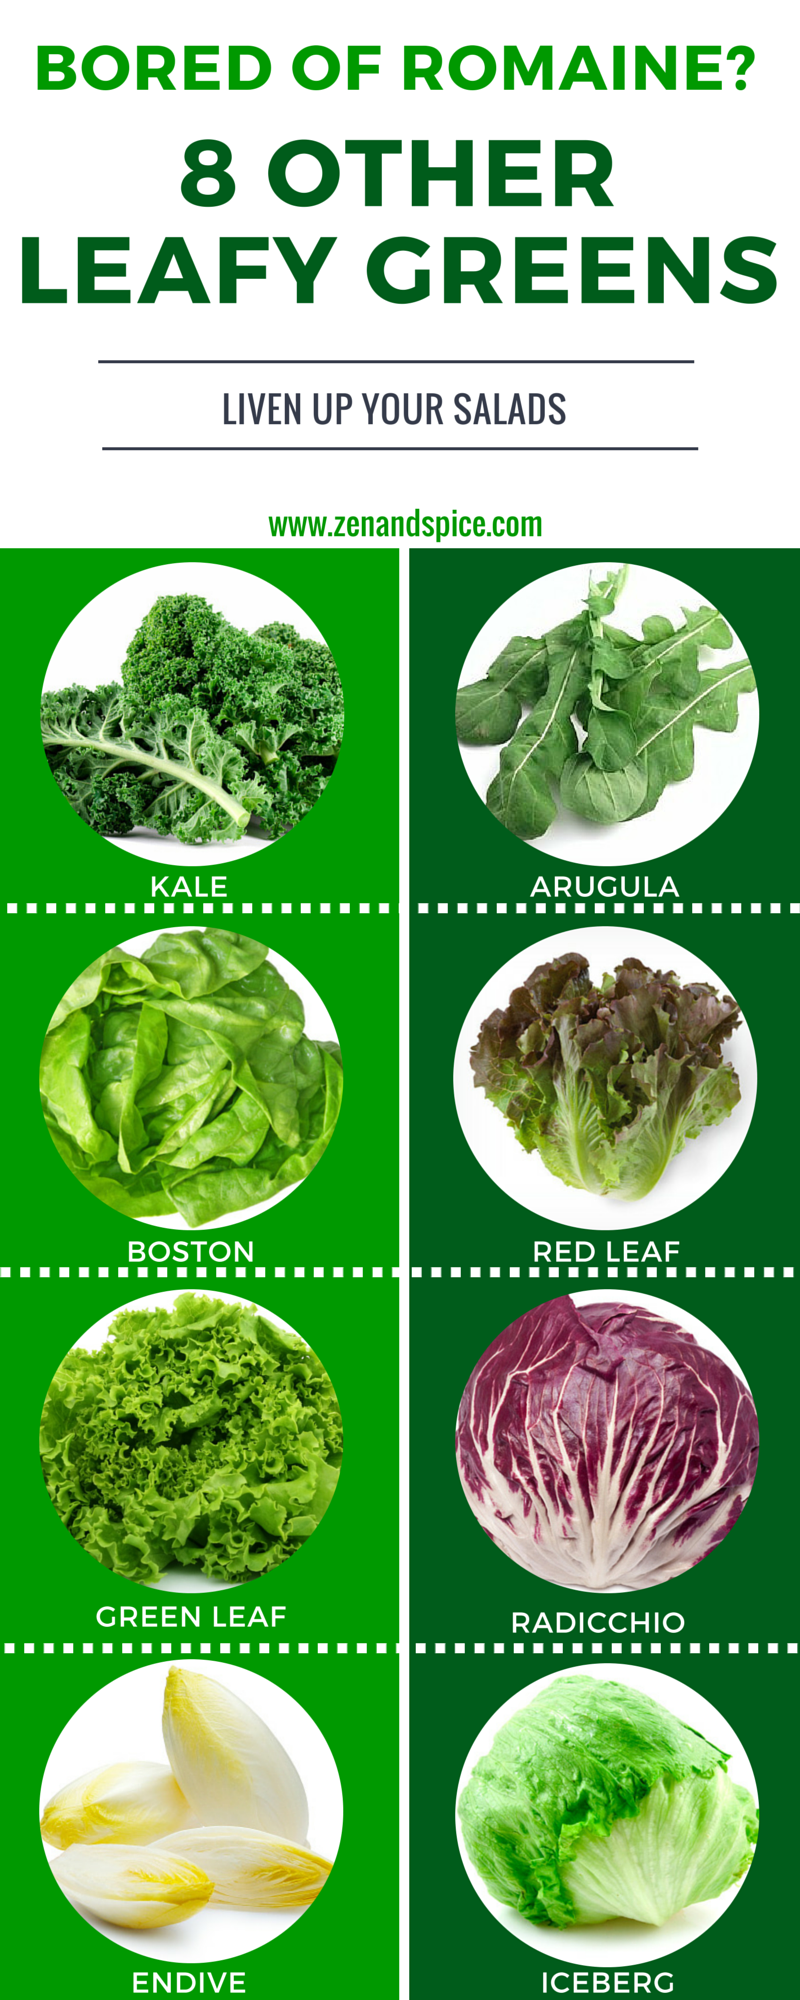 Bored of Romaine- 8 Other Leafy Greens (2)